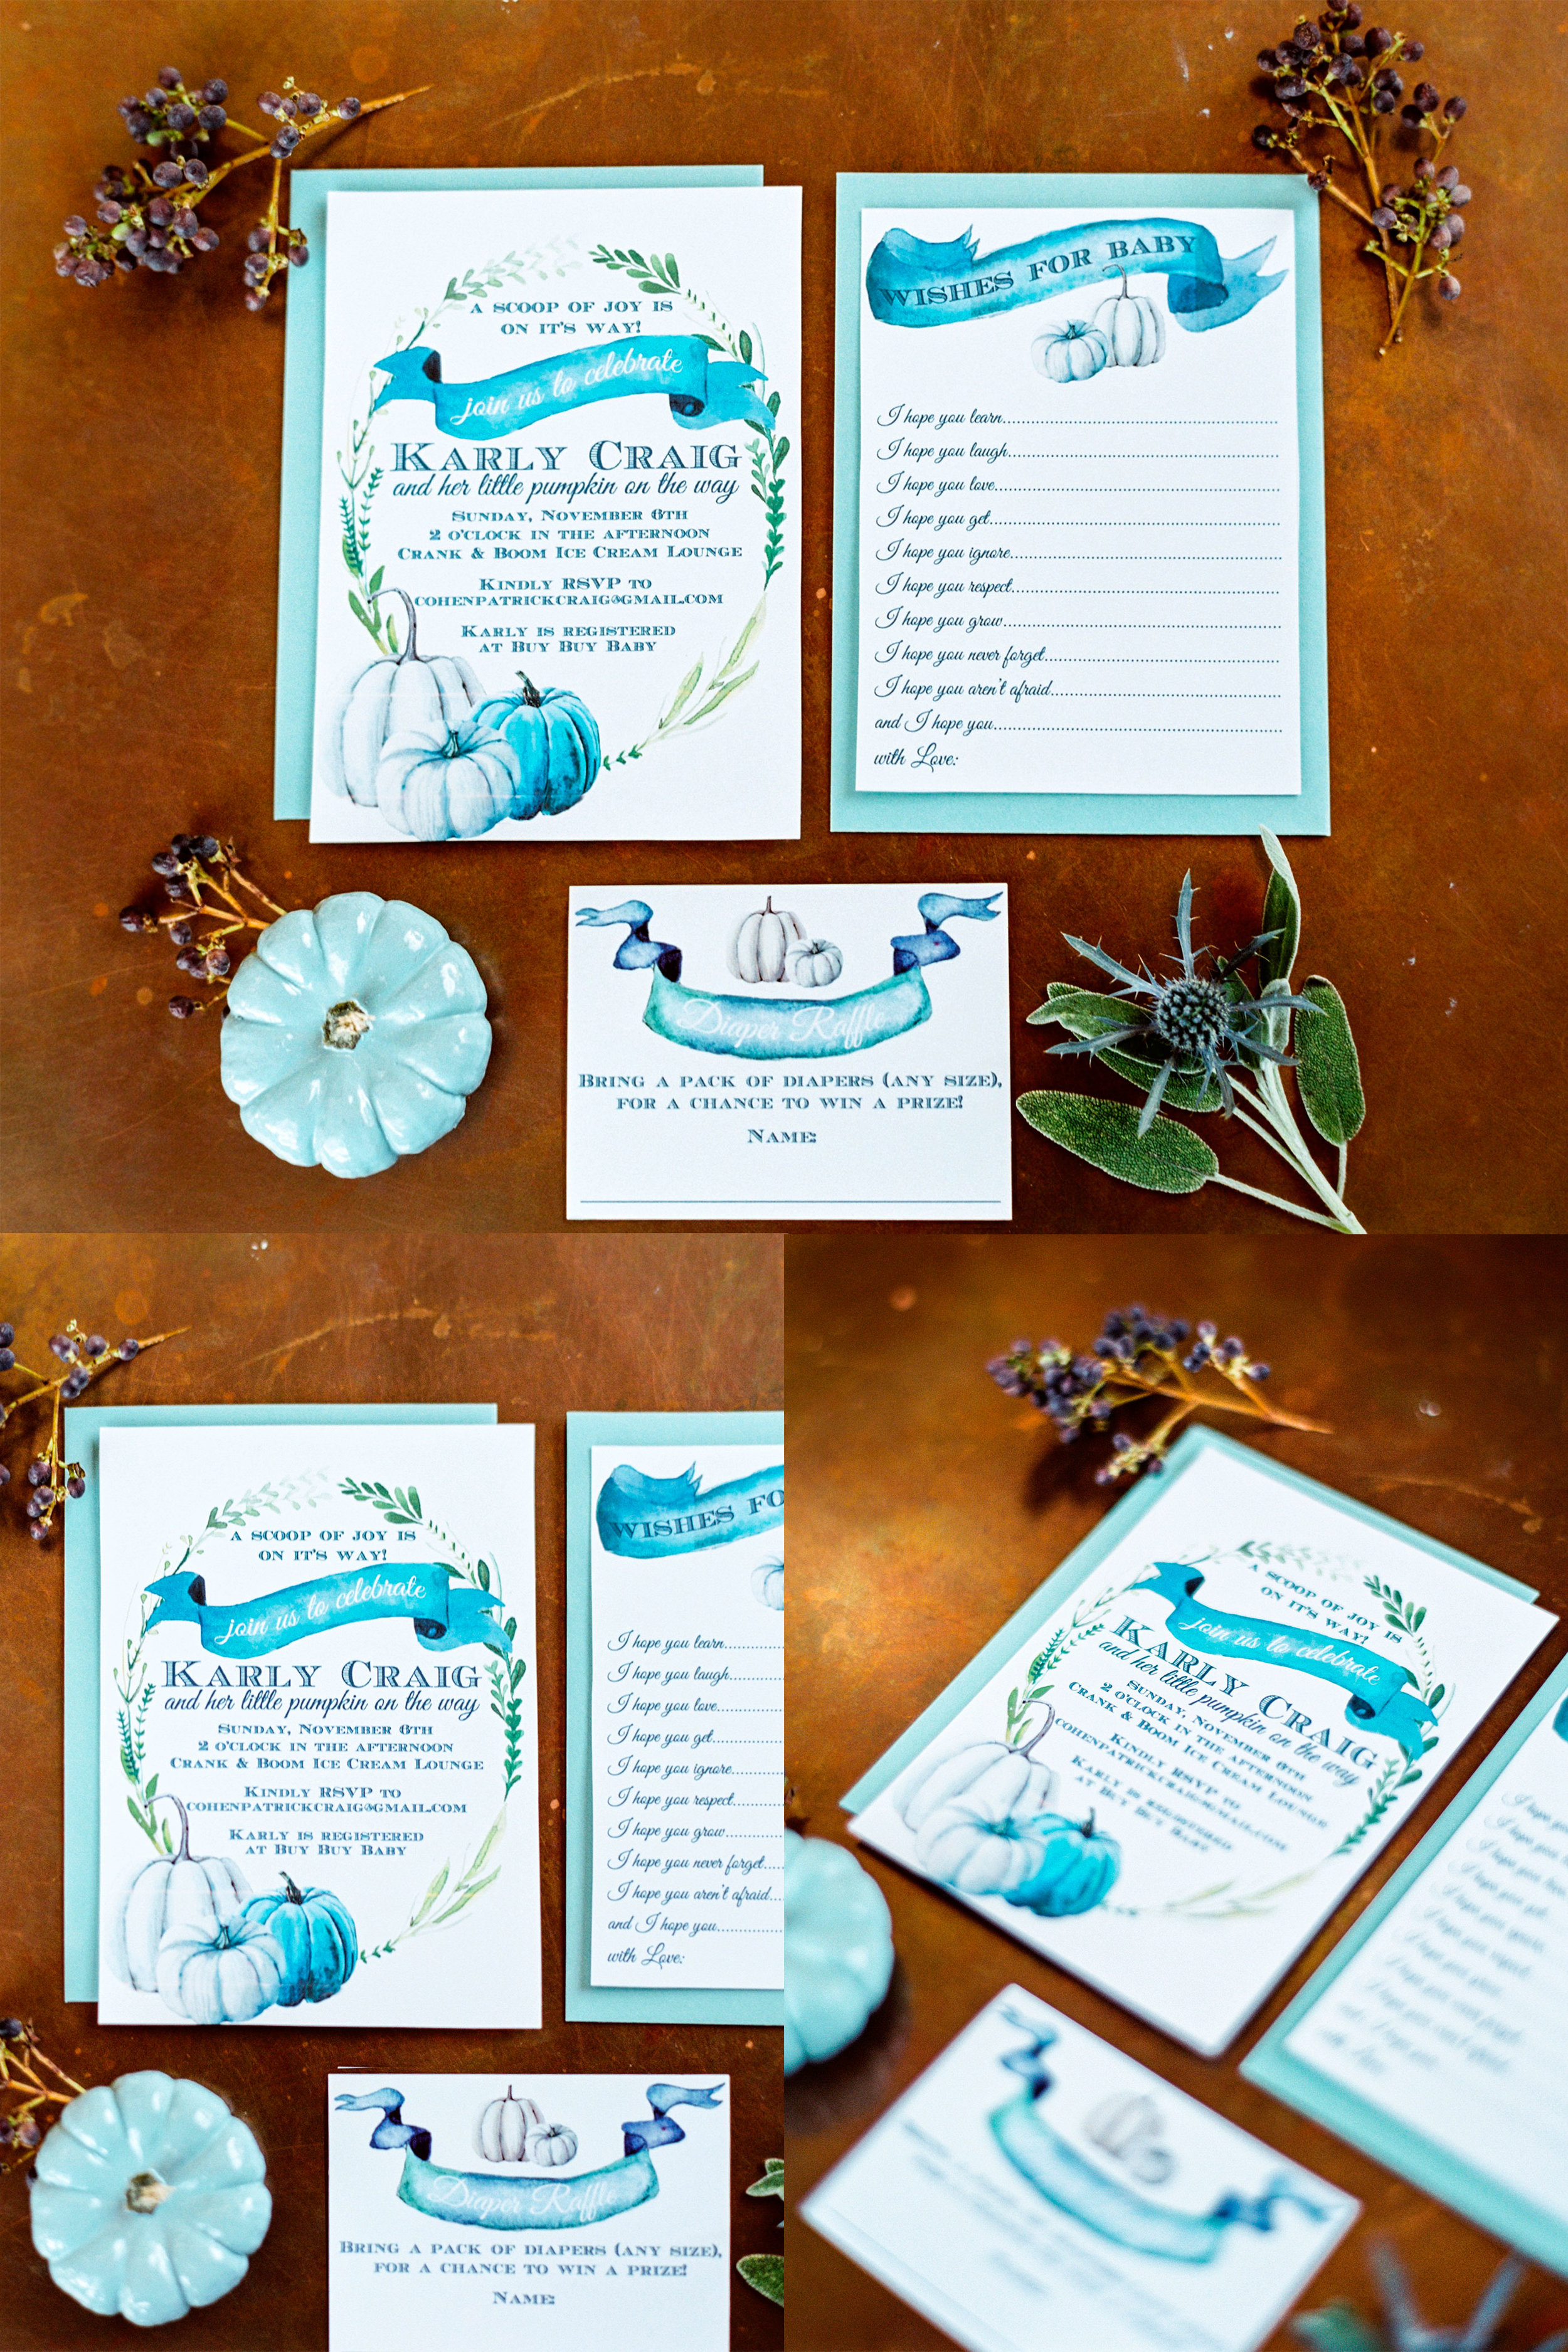 Fall baby shower.  Baby boy shower with pumpkins. Watercolor baby shower invitations.  Wishes for baby shower game.